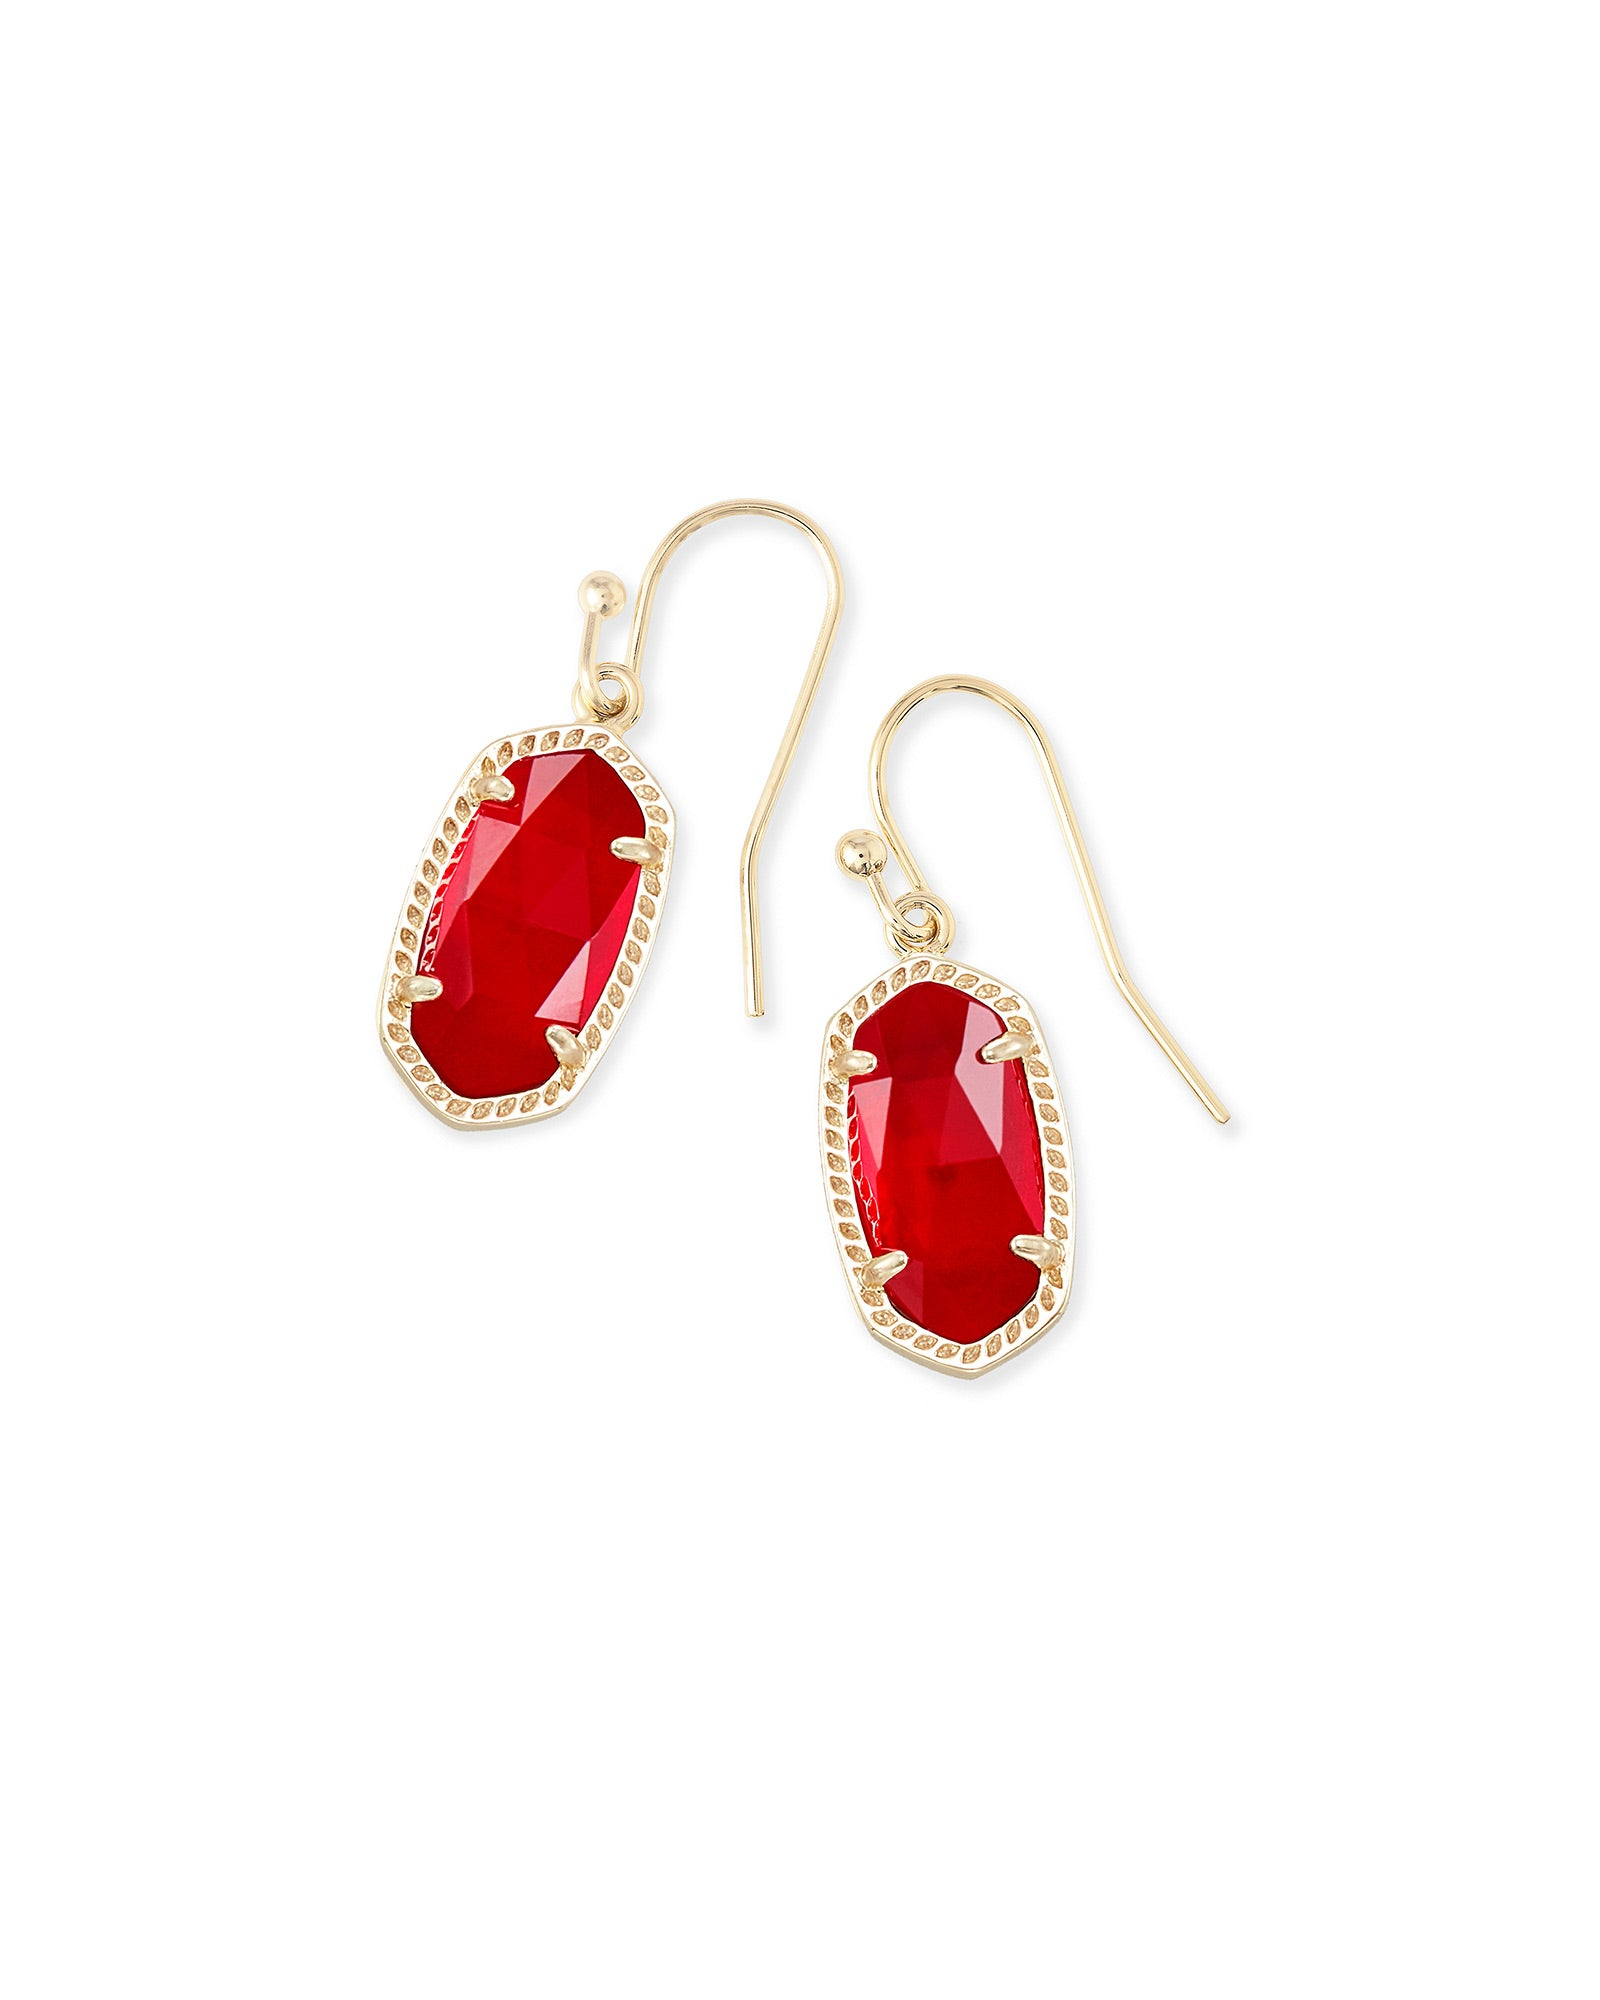 Kendra Scott Lee Gold Drop Earrings In Cherry Red Illusion